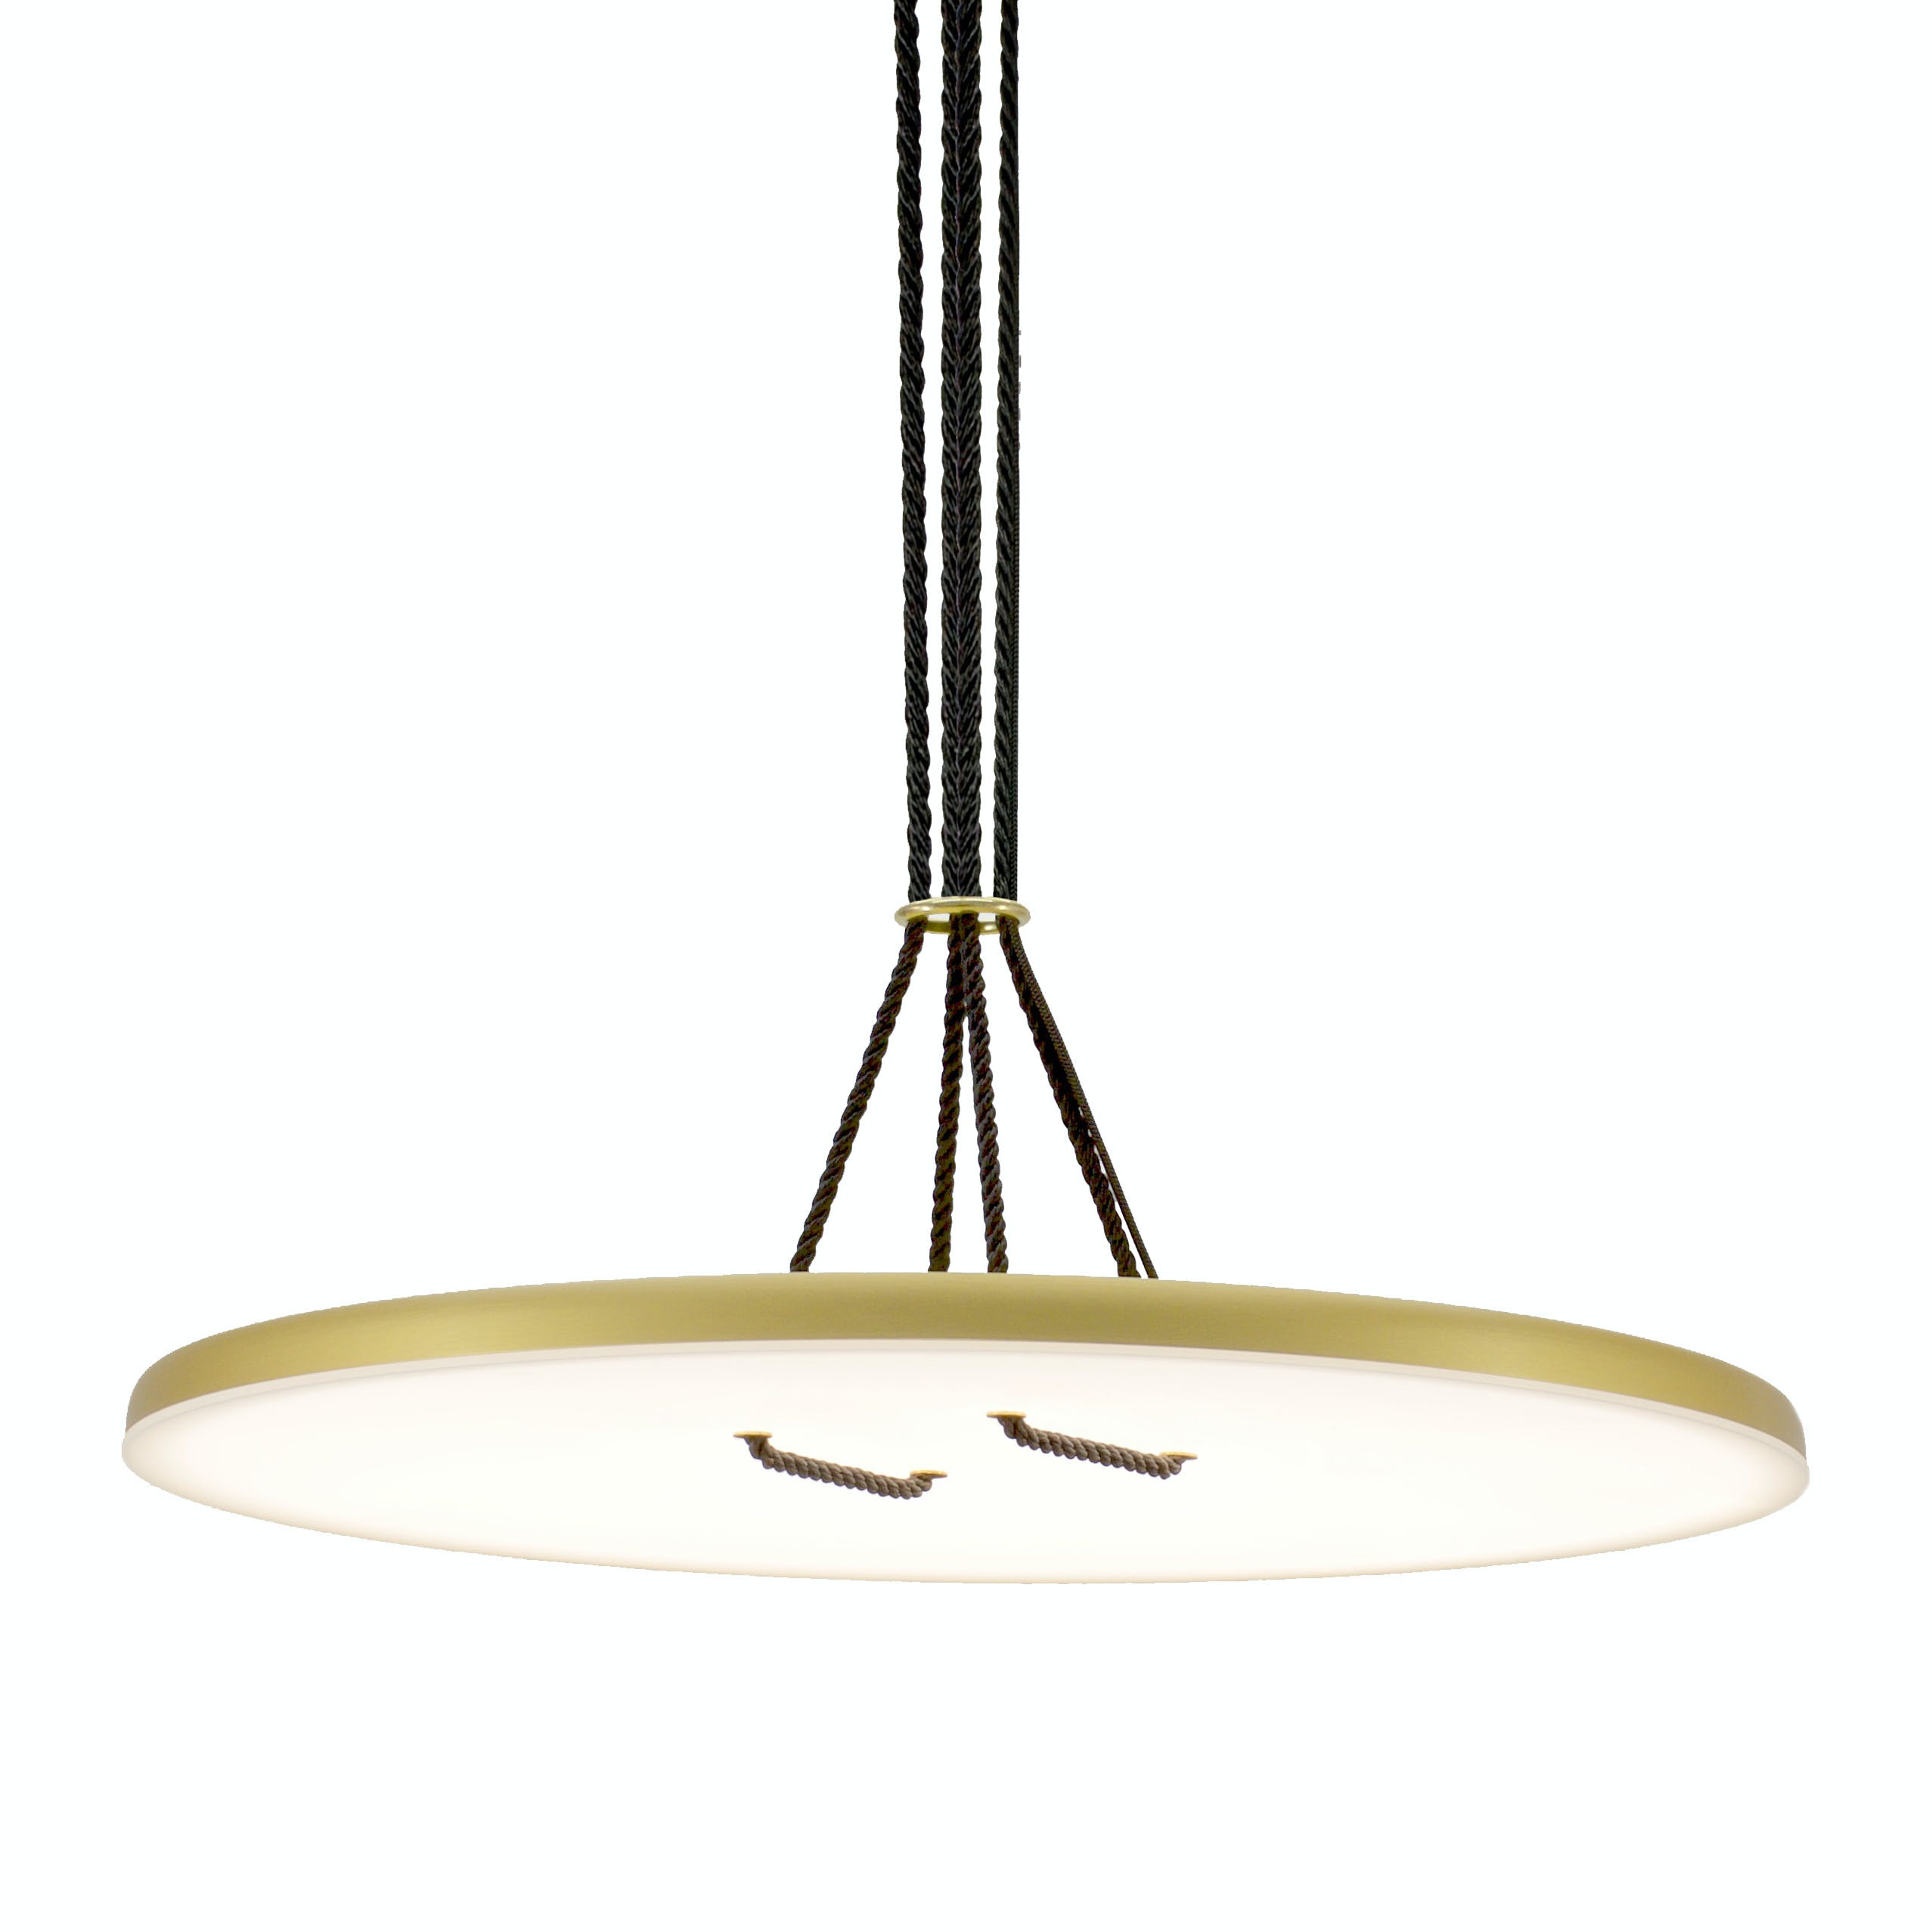 Andlight Button 60 Pendant Light Angle Haute Living Thumbnail